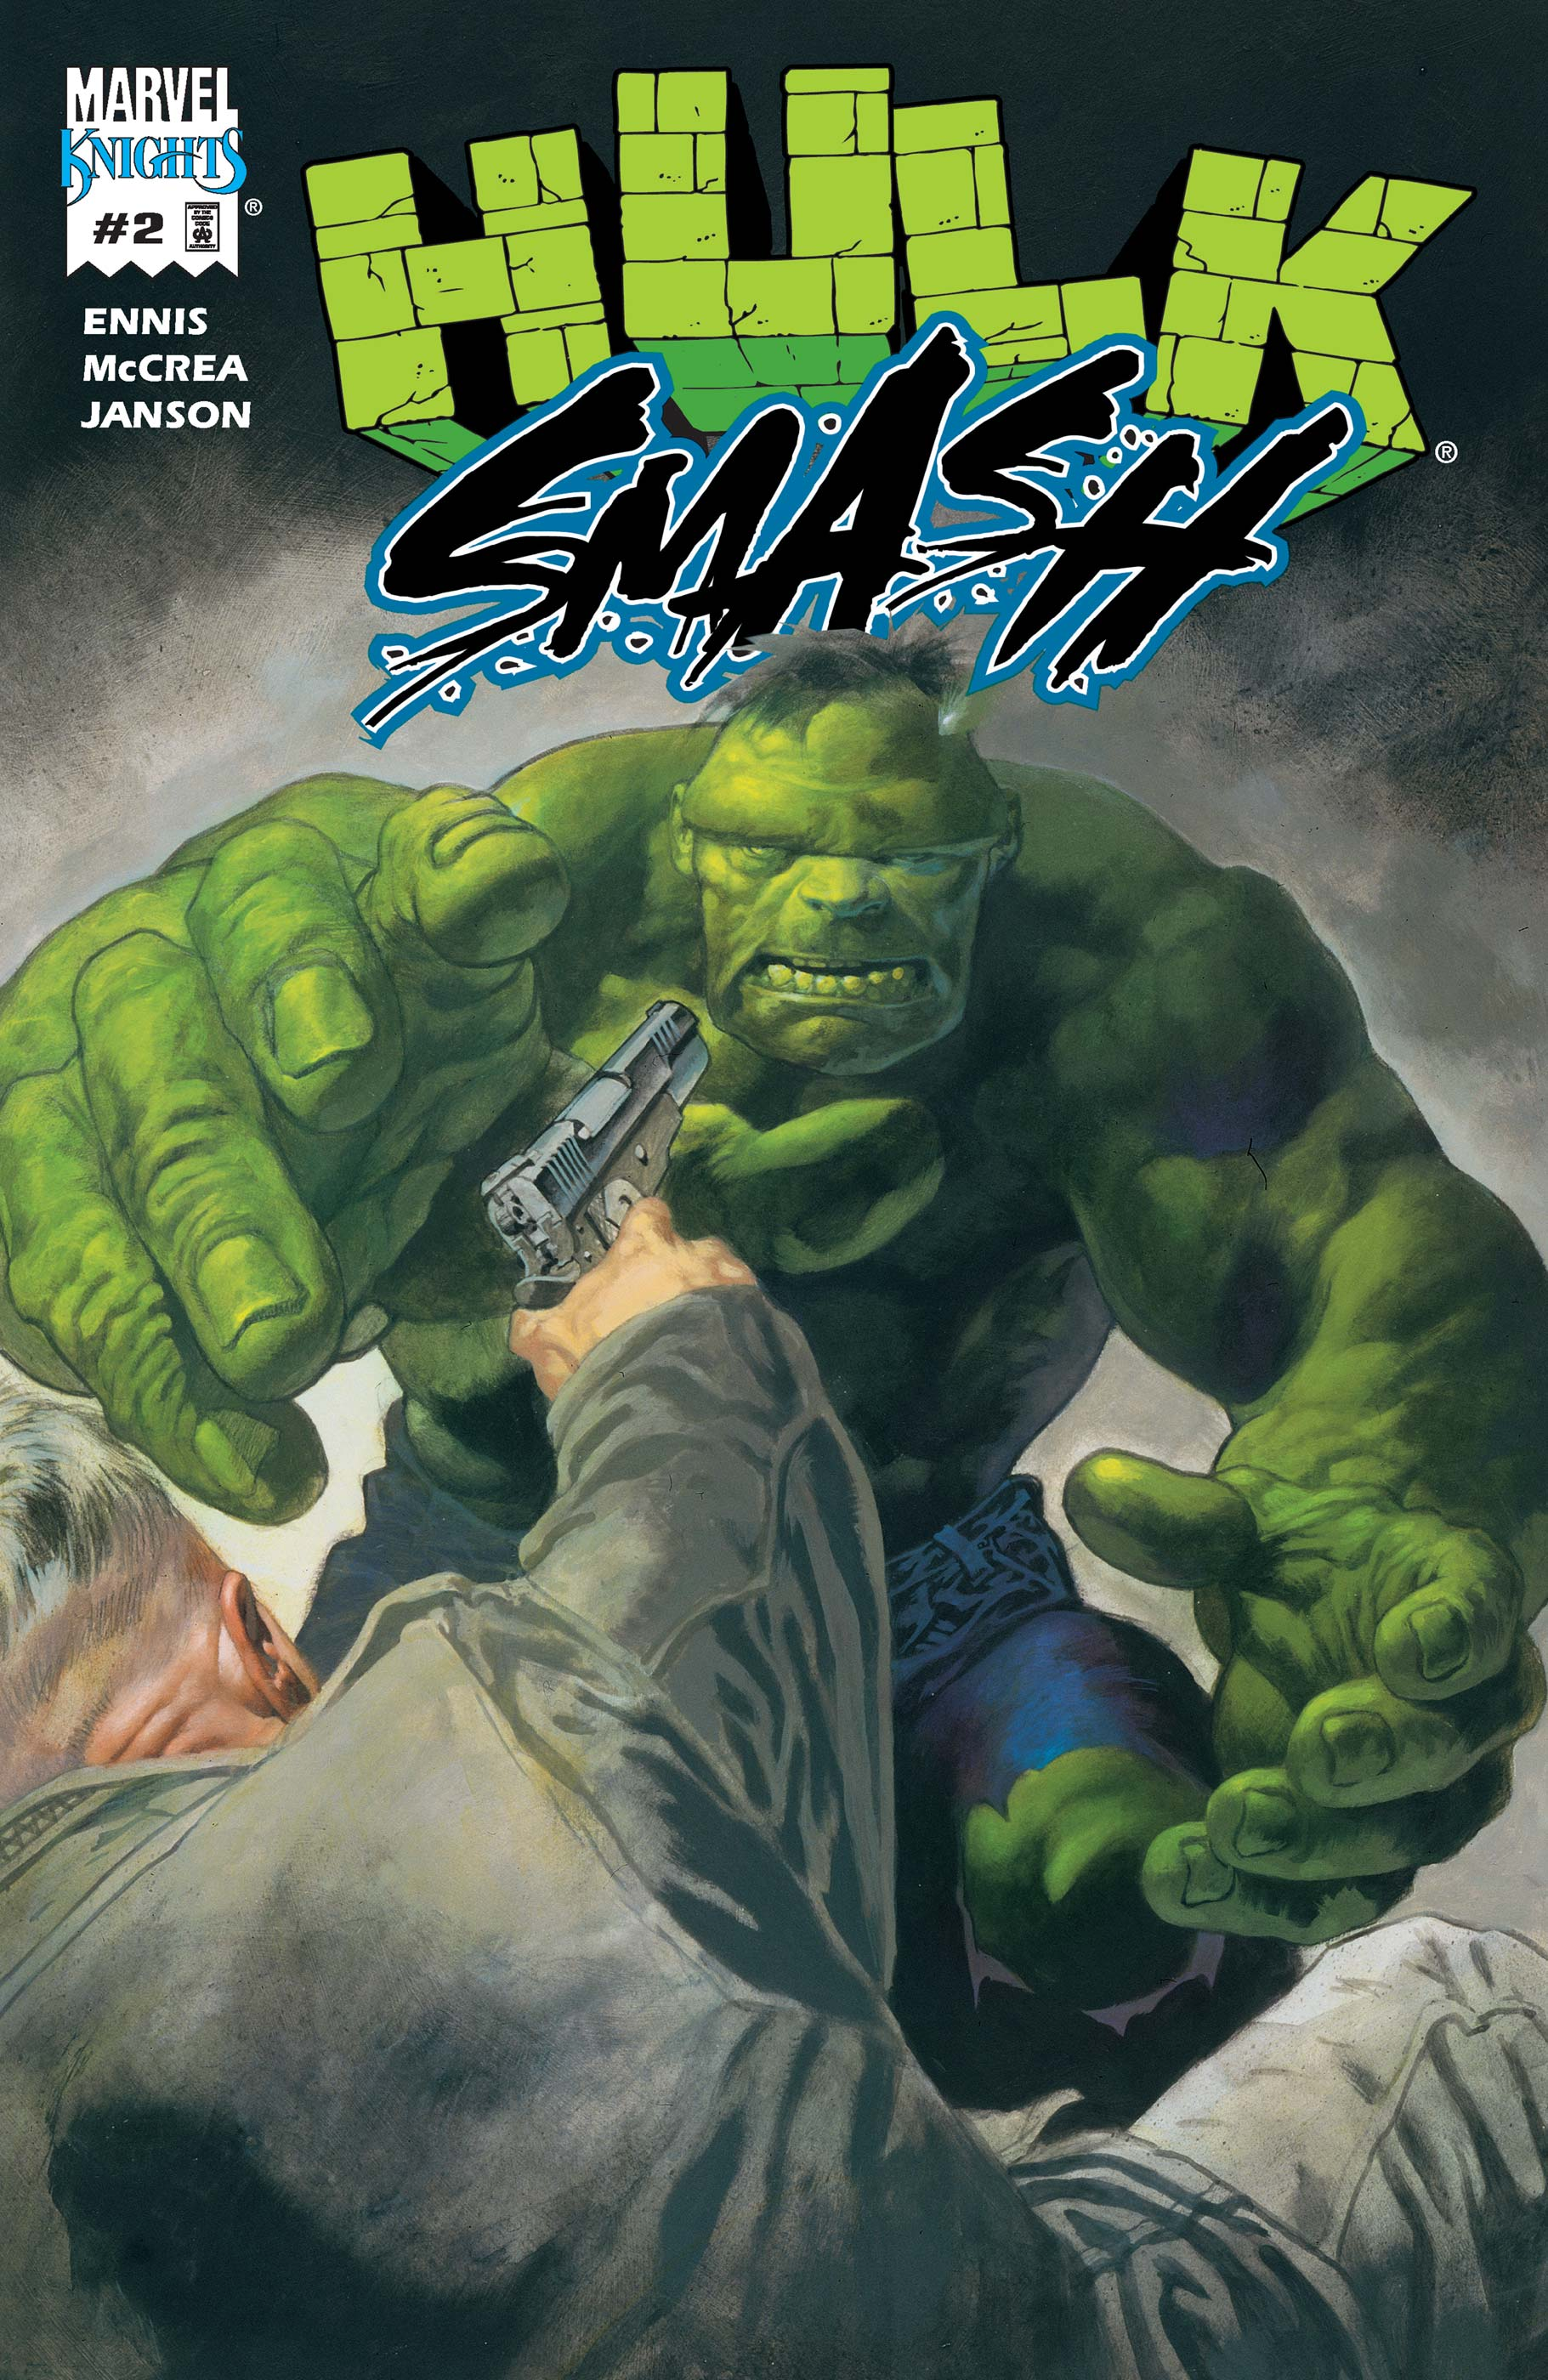 Pictures Of Hulk Smash : pictures, smash, Smash, (2001), Comic, Issues, Marvel